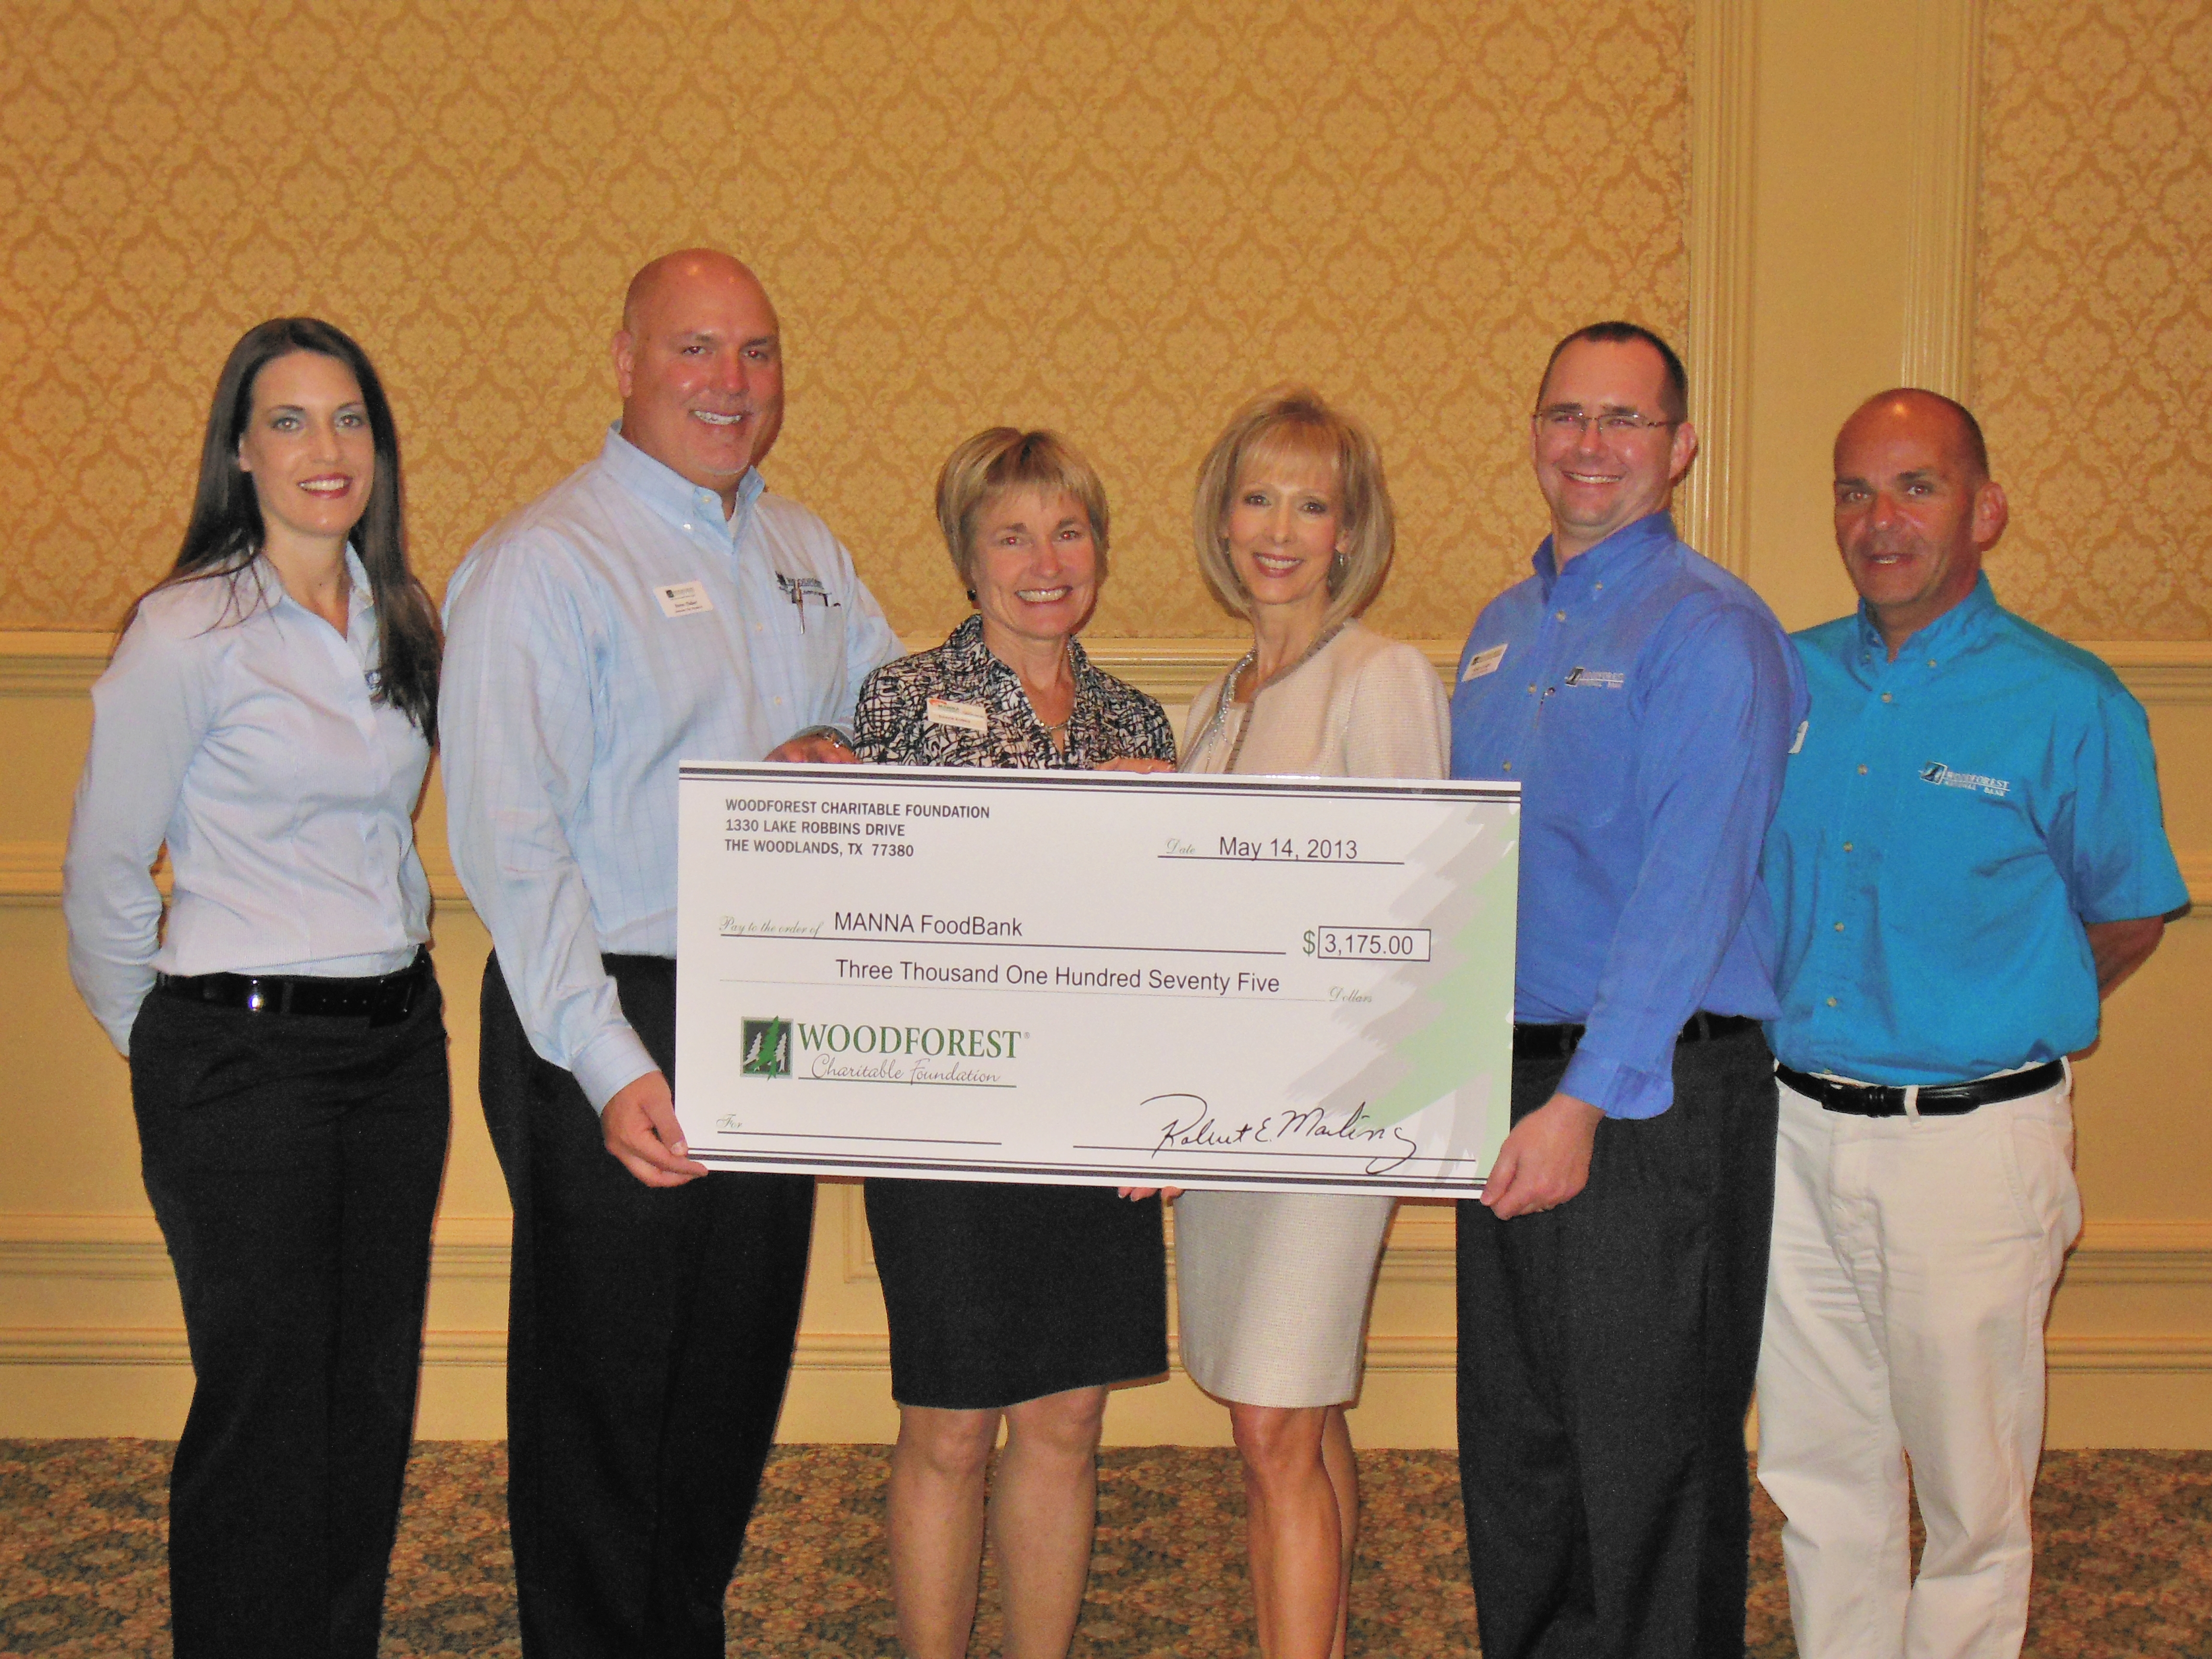 MANNA Food Bank receives $3,175 donation from Woodforest Charitable Foundation.